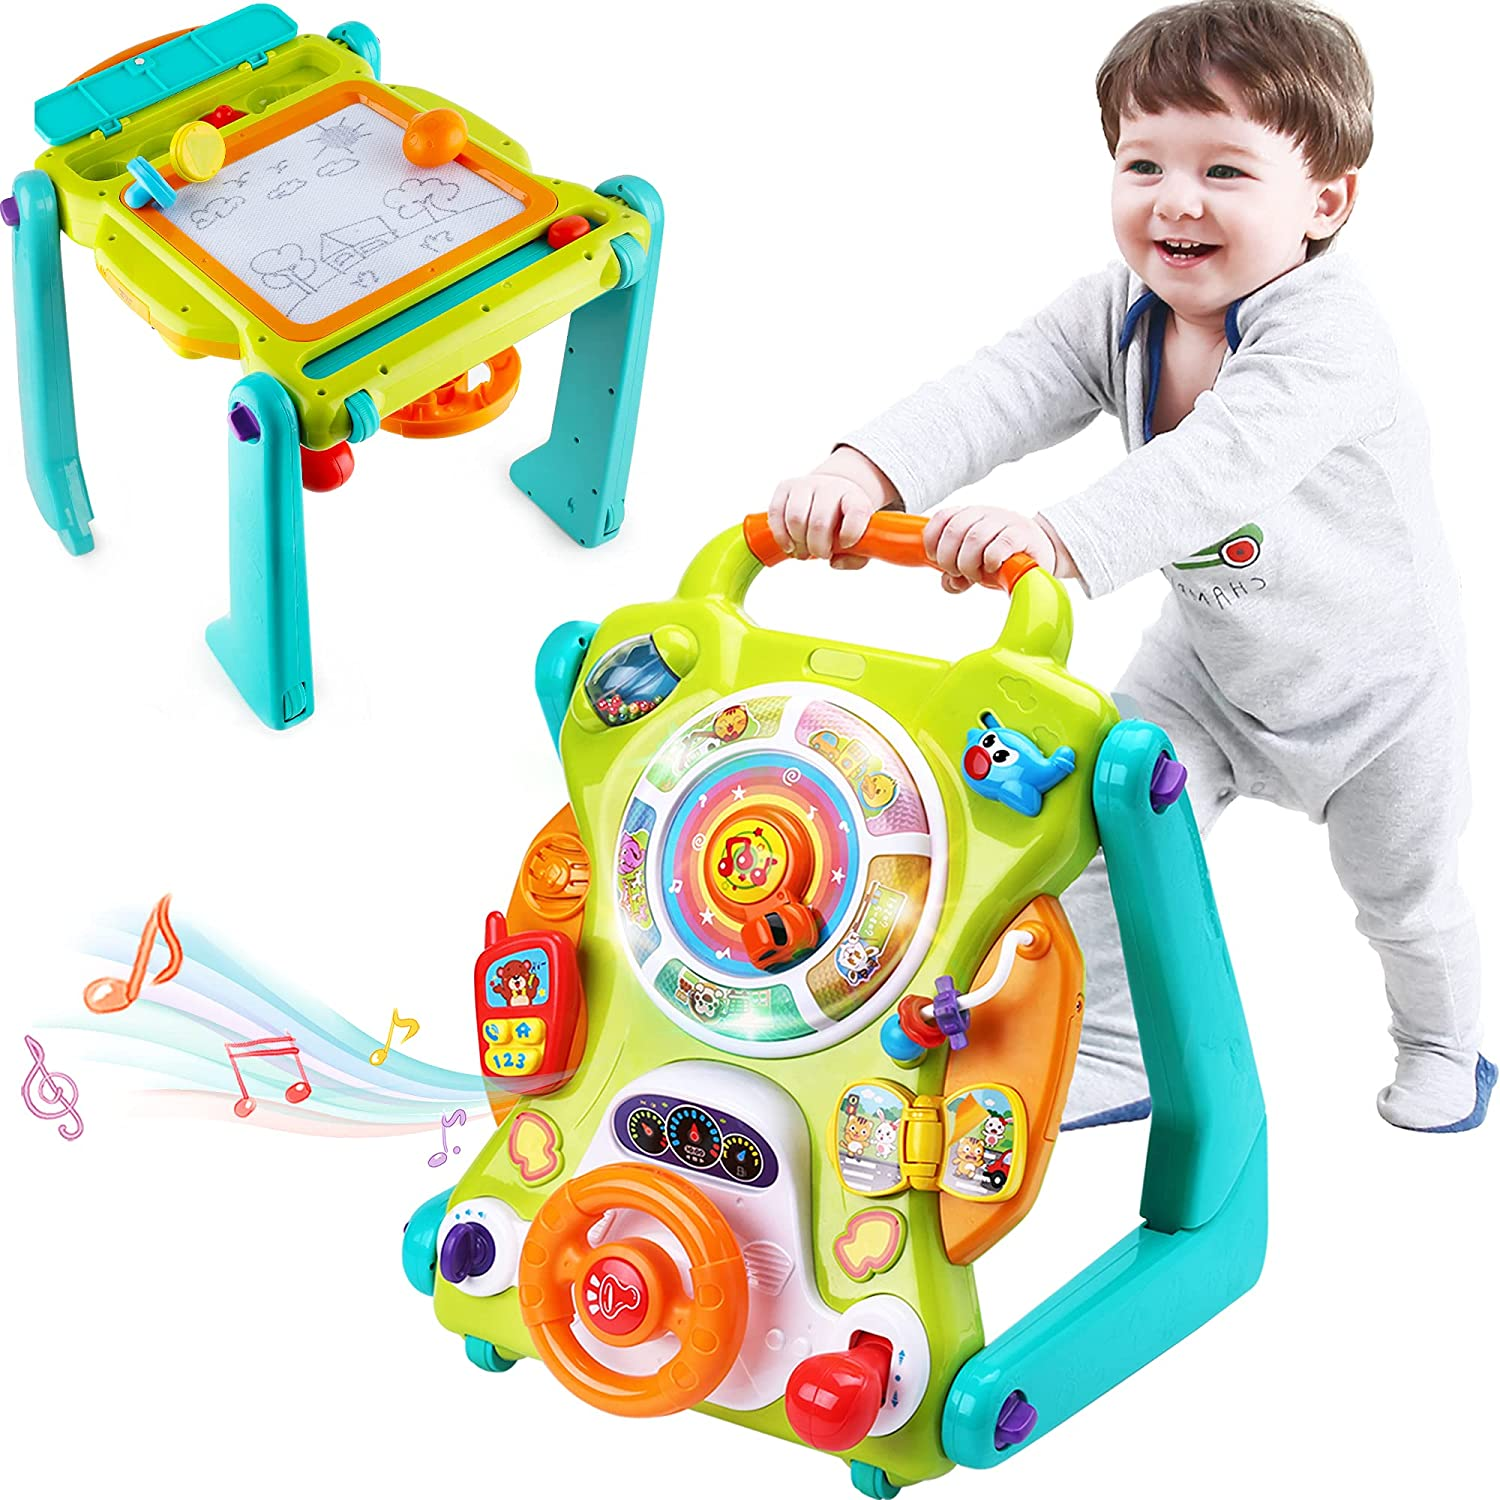 iPlay, iLearn Musical 3-In-1 Sit To Stand Toy